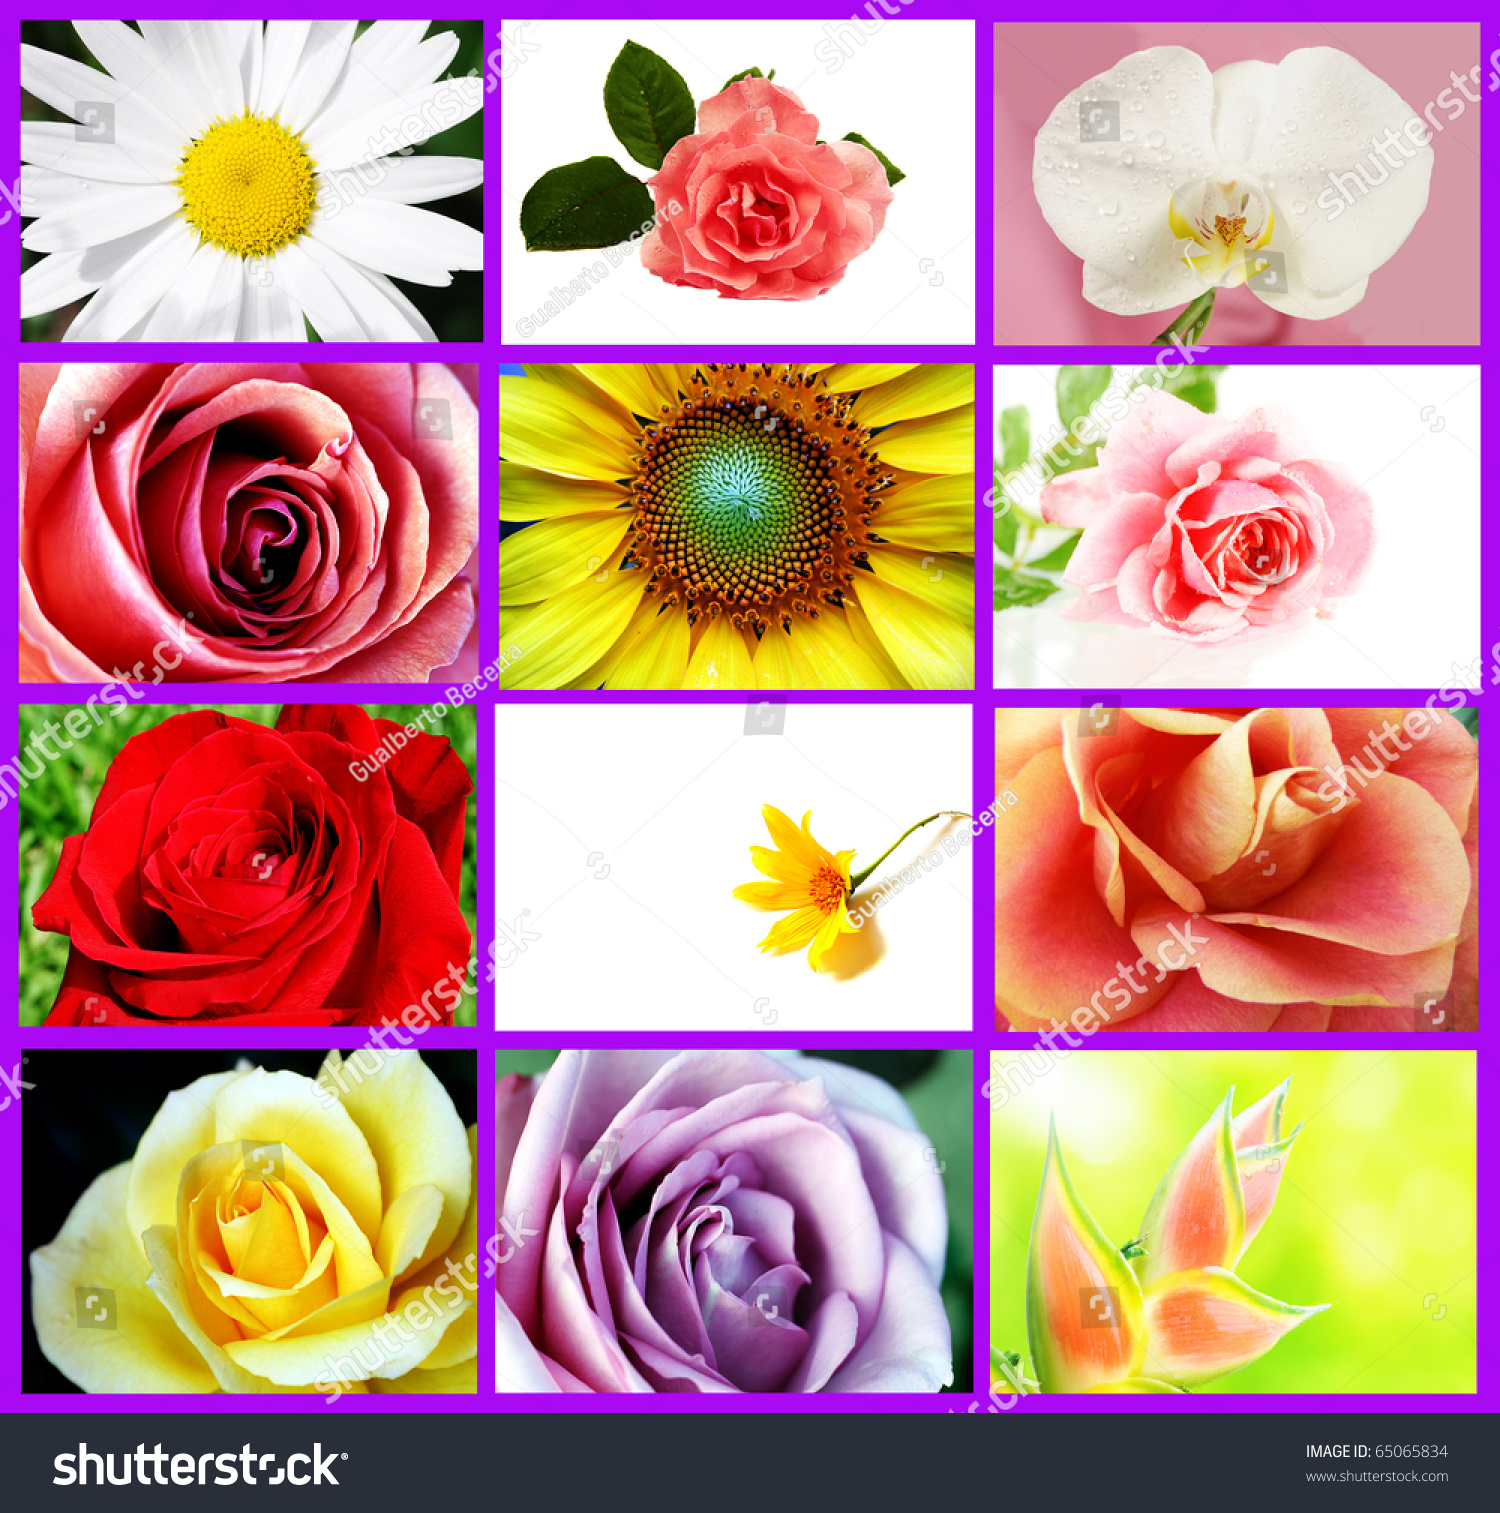 Several types beautiful flowers collage stock photo royalty free several types of beautiful flowers in a collage izmirmasajfo